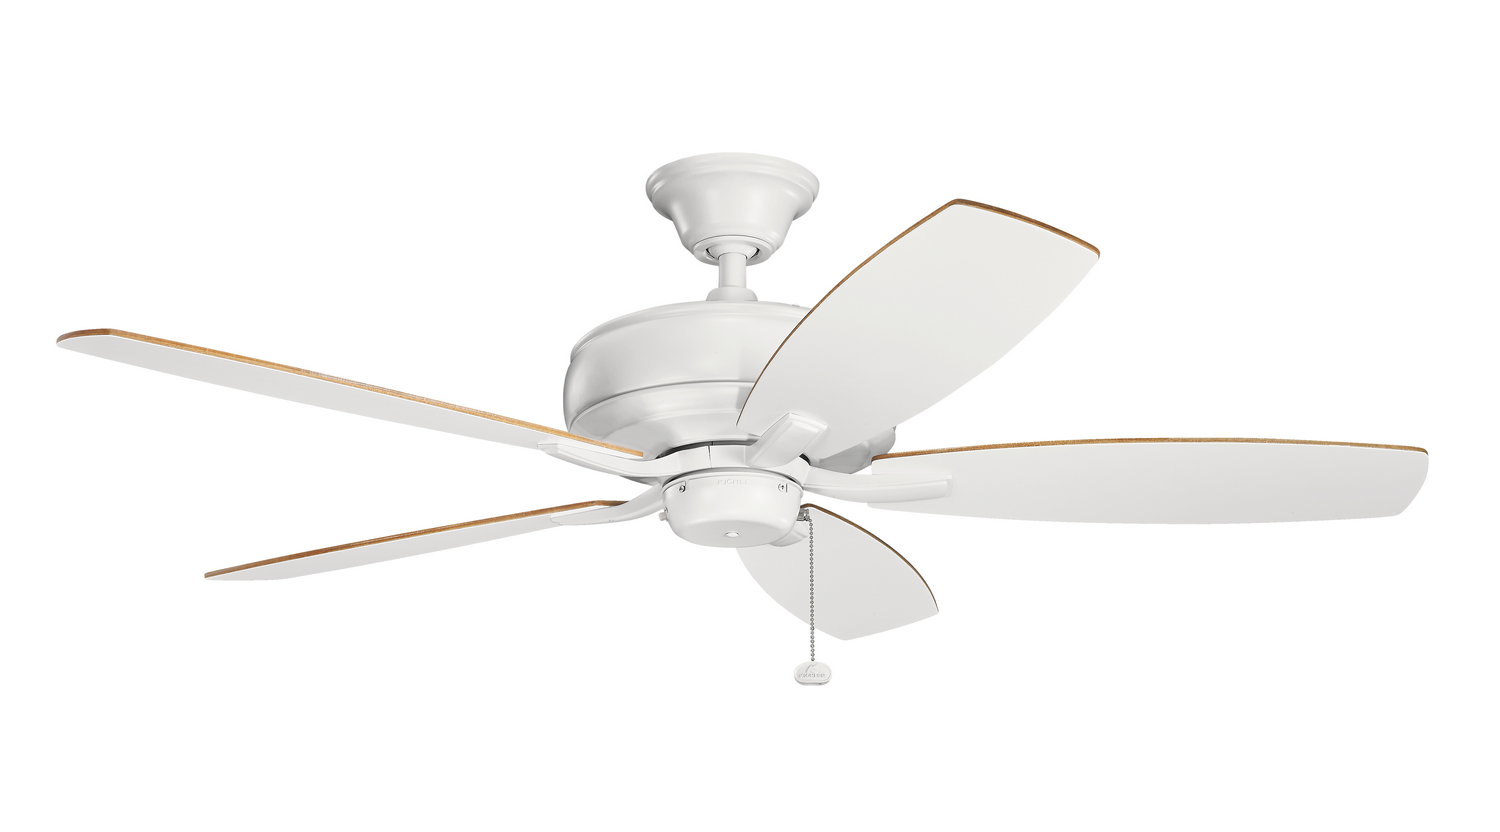 52 inchCeiling Fan from the Terra collection by Kichler 330247MWH